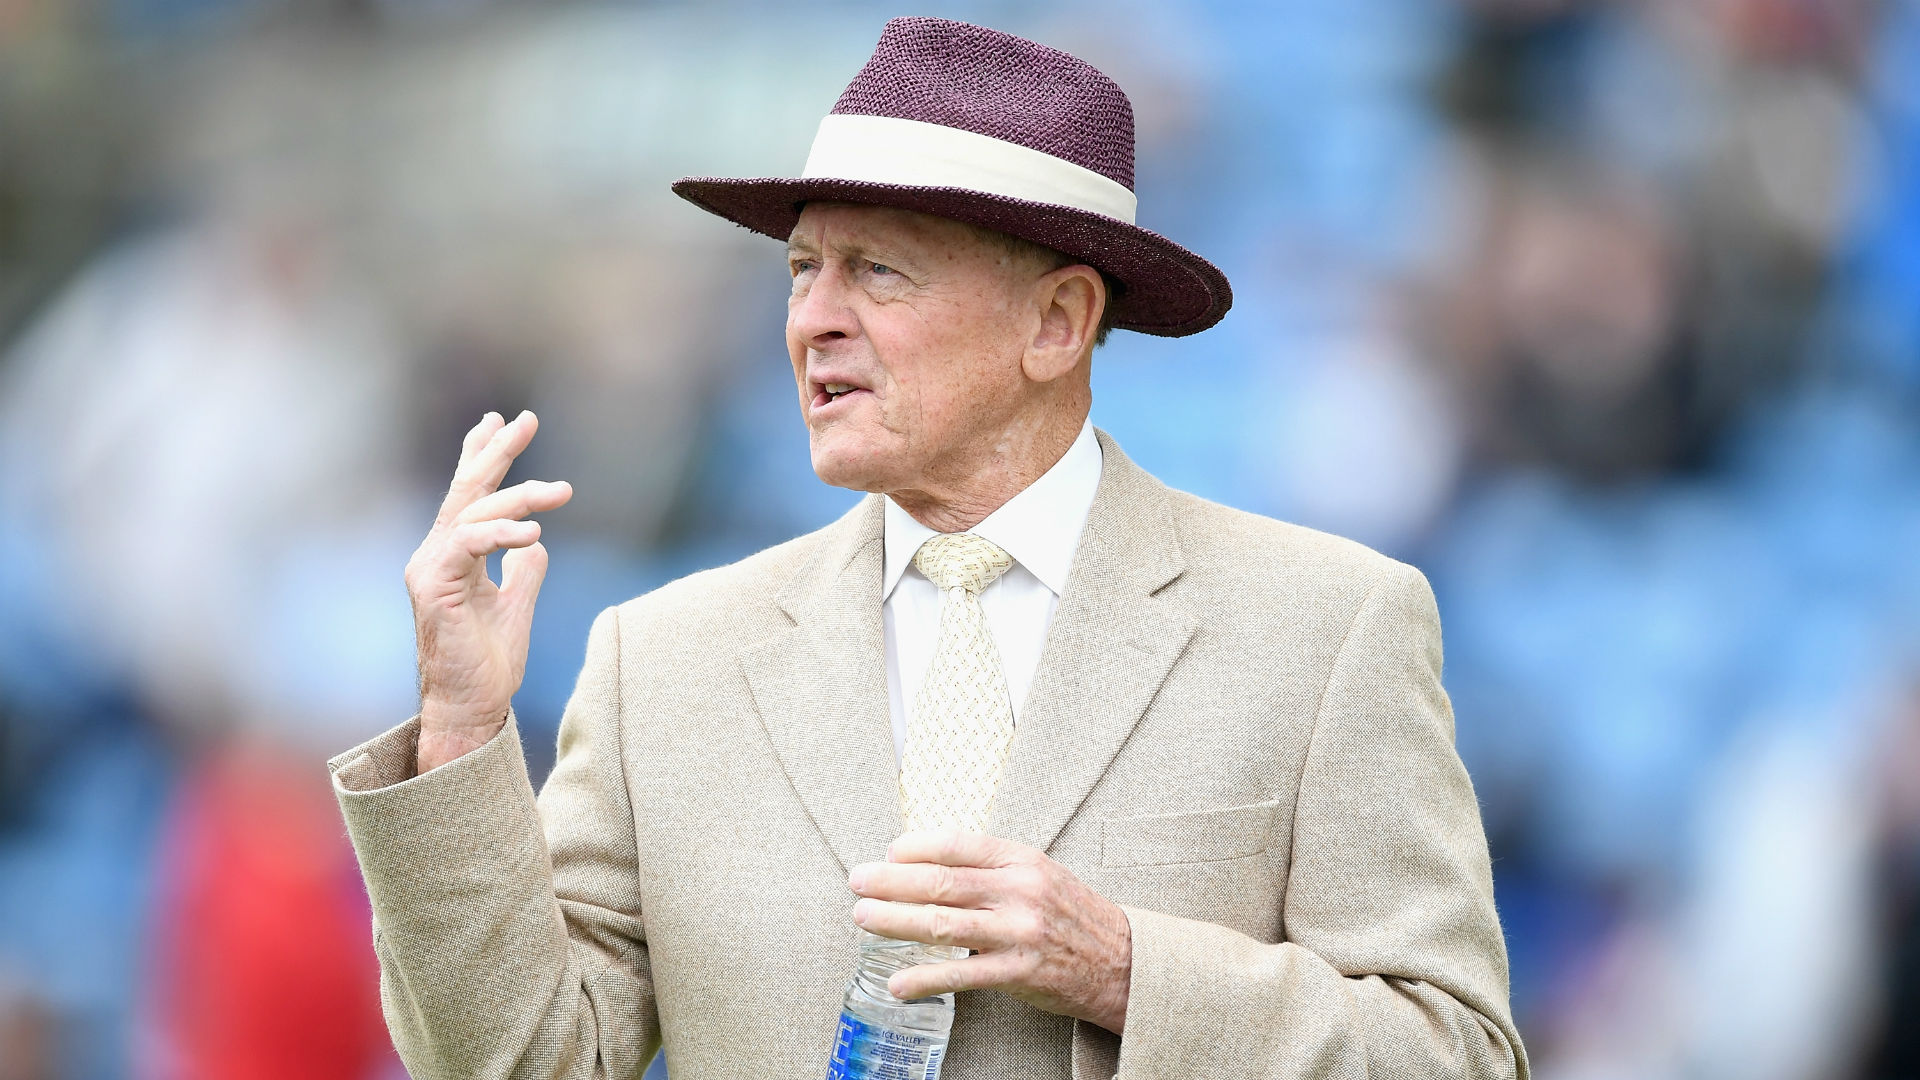 Geoffrey Boycott: Former cricketer sorry for 'unacceptable' comment